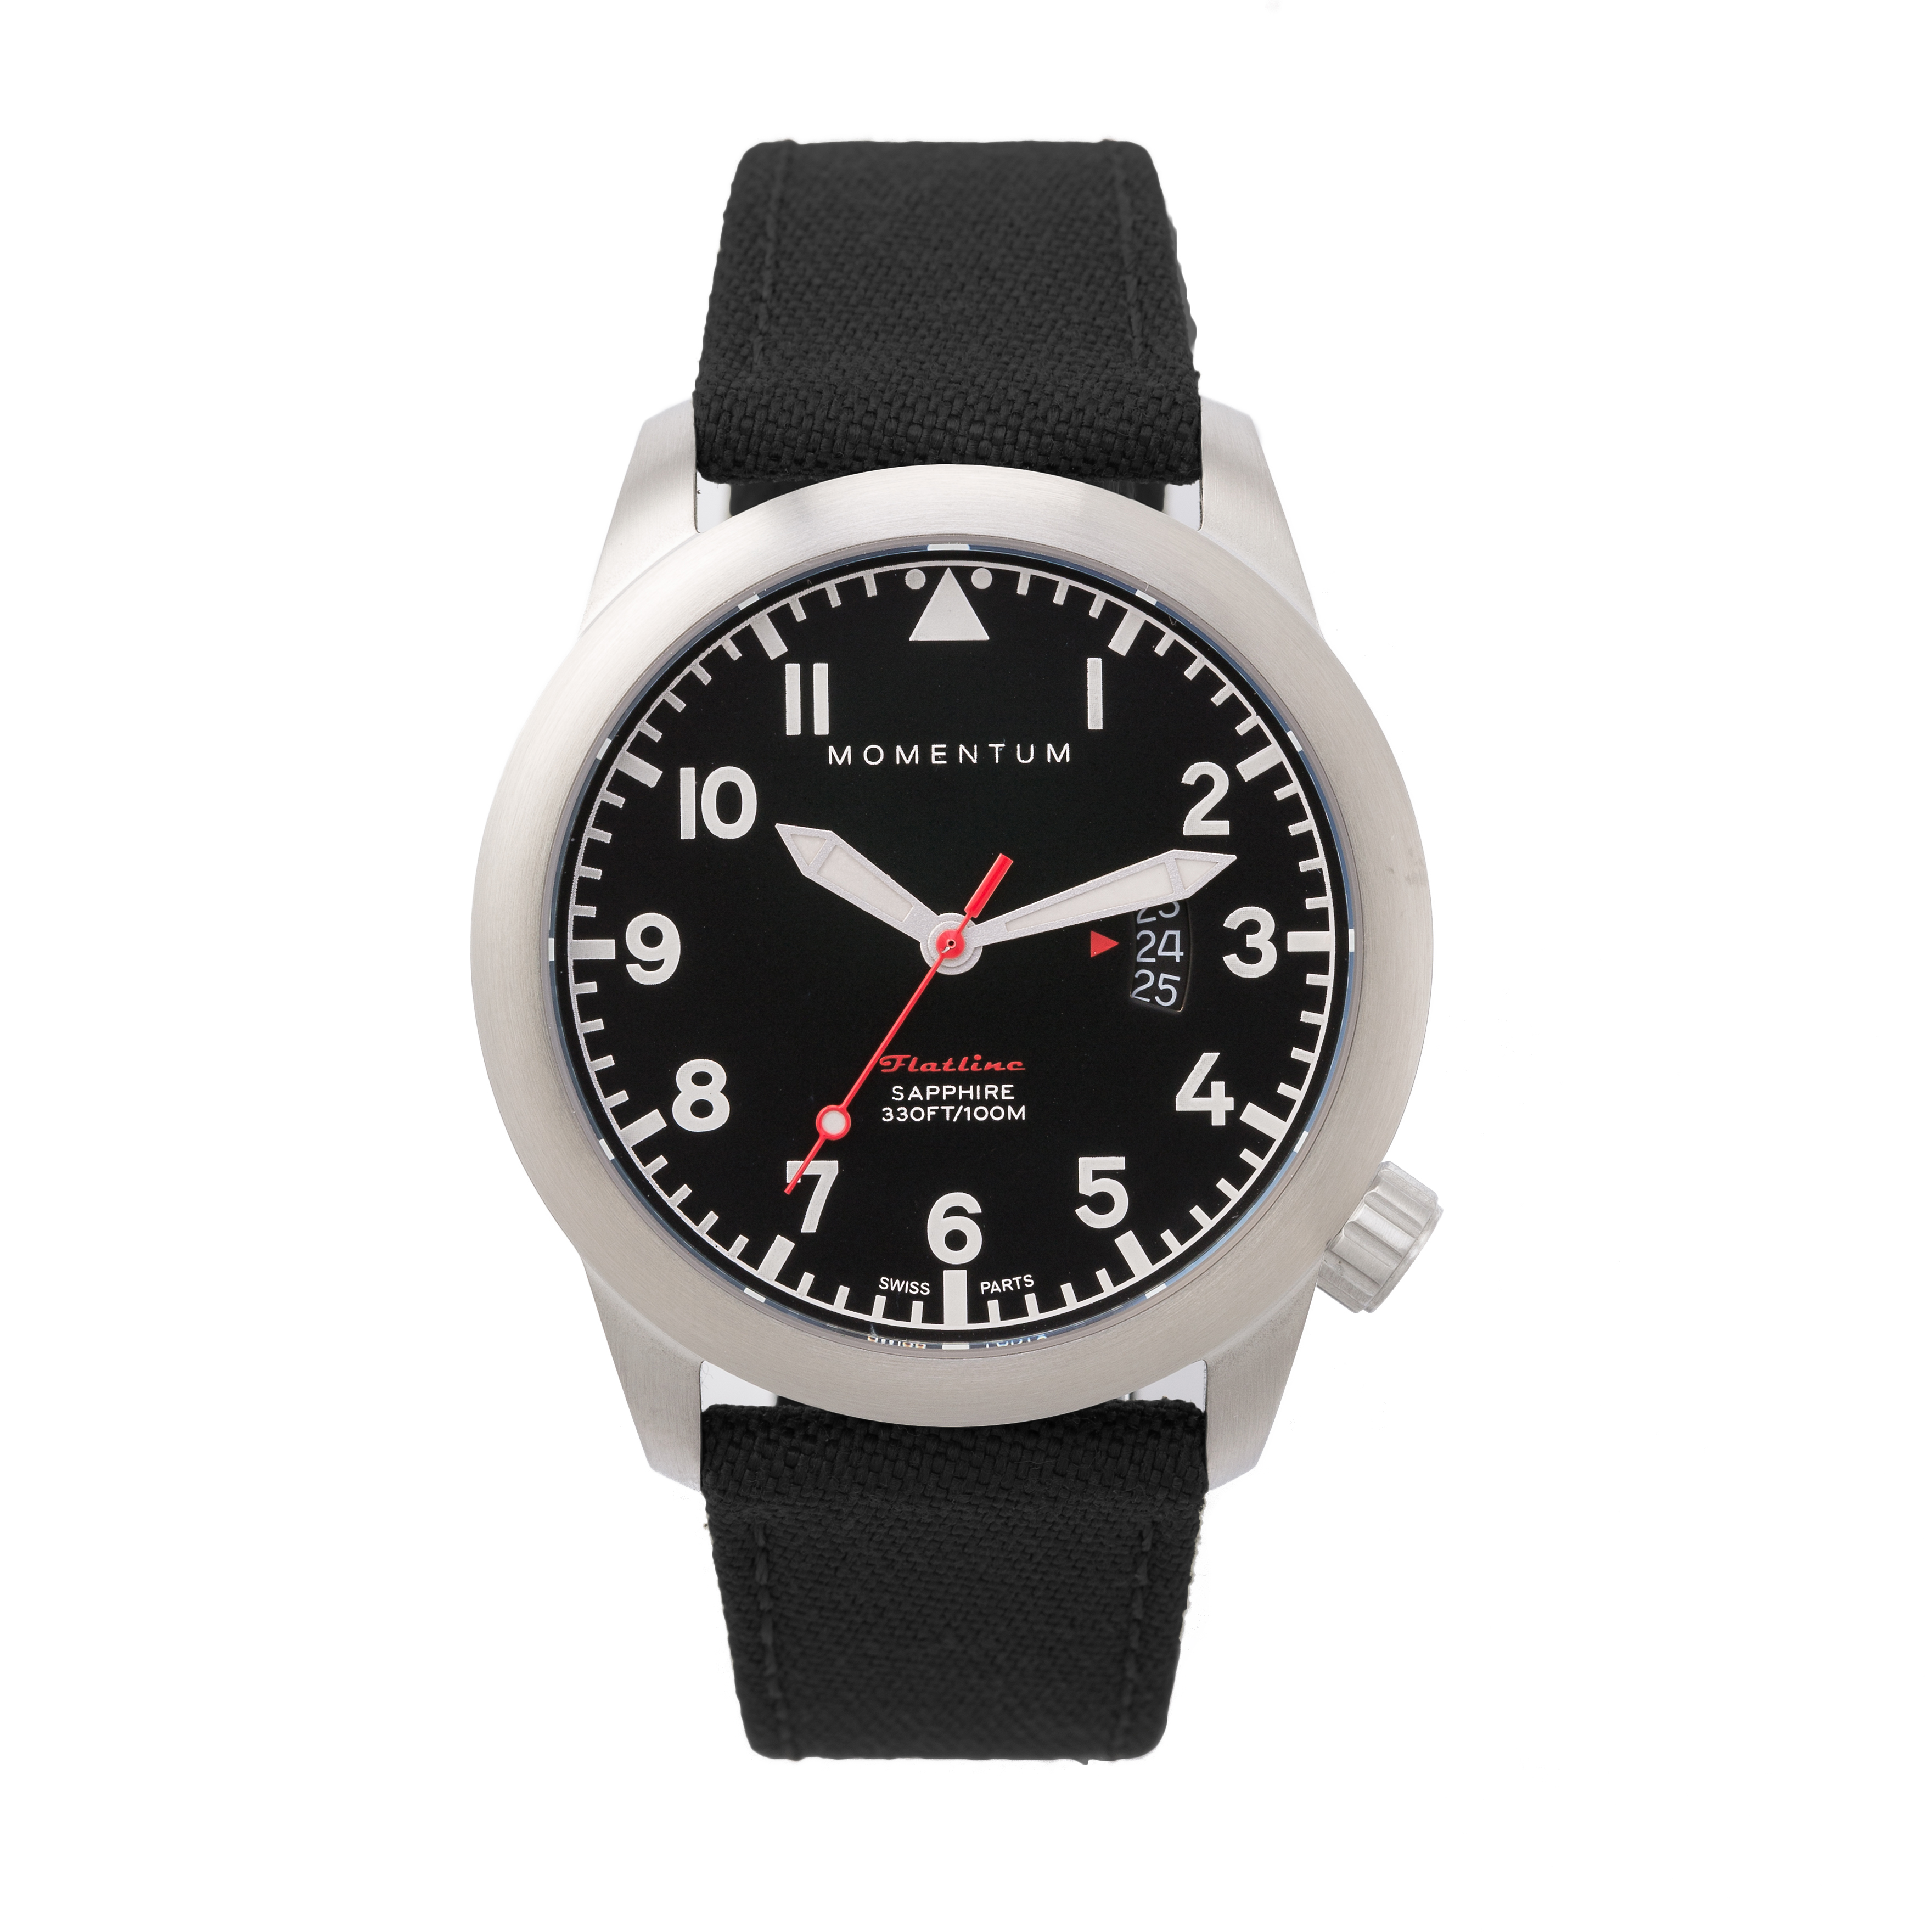 review duo yet watches military story timex todd snyder gq rugged s new watch is best rug and the